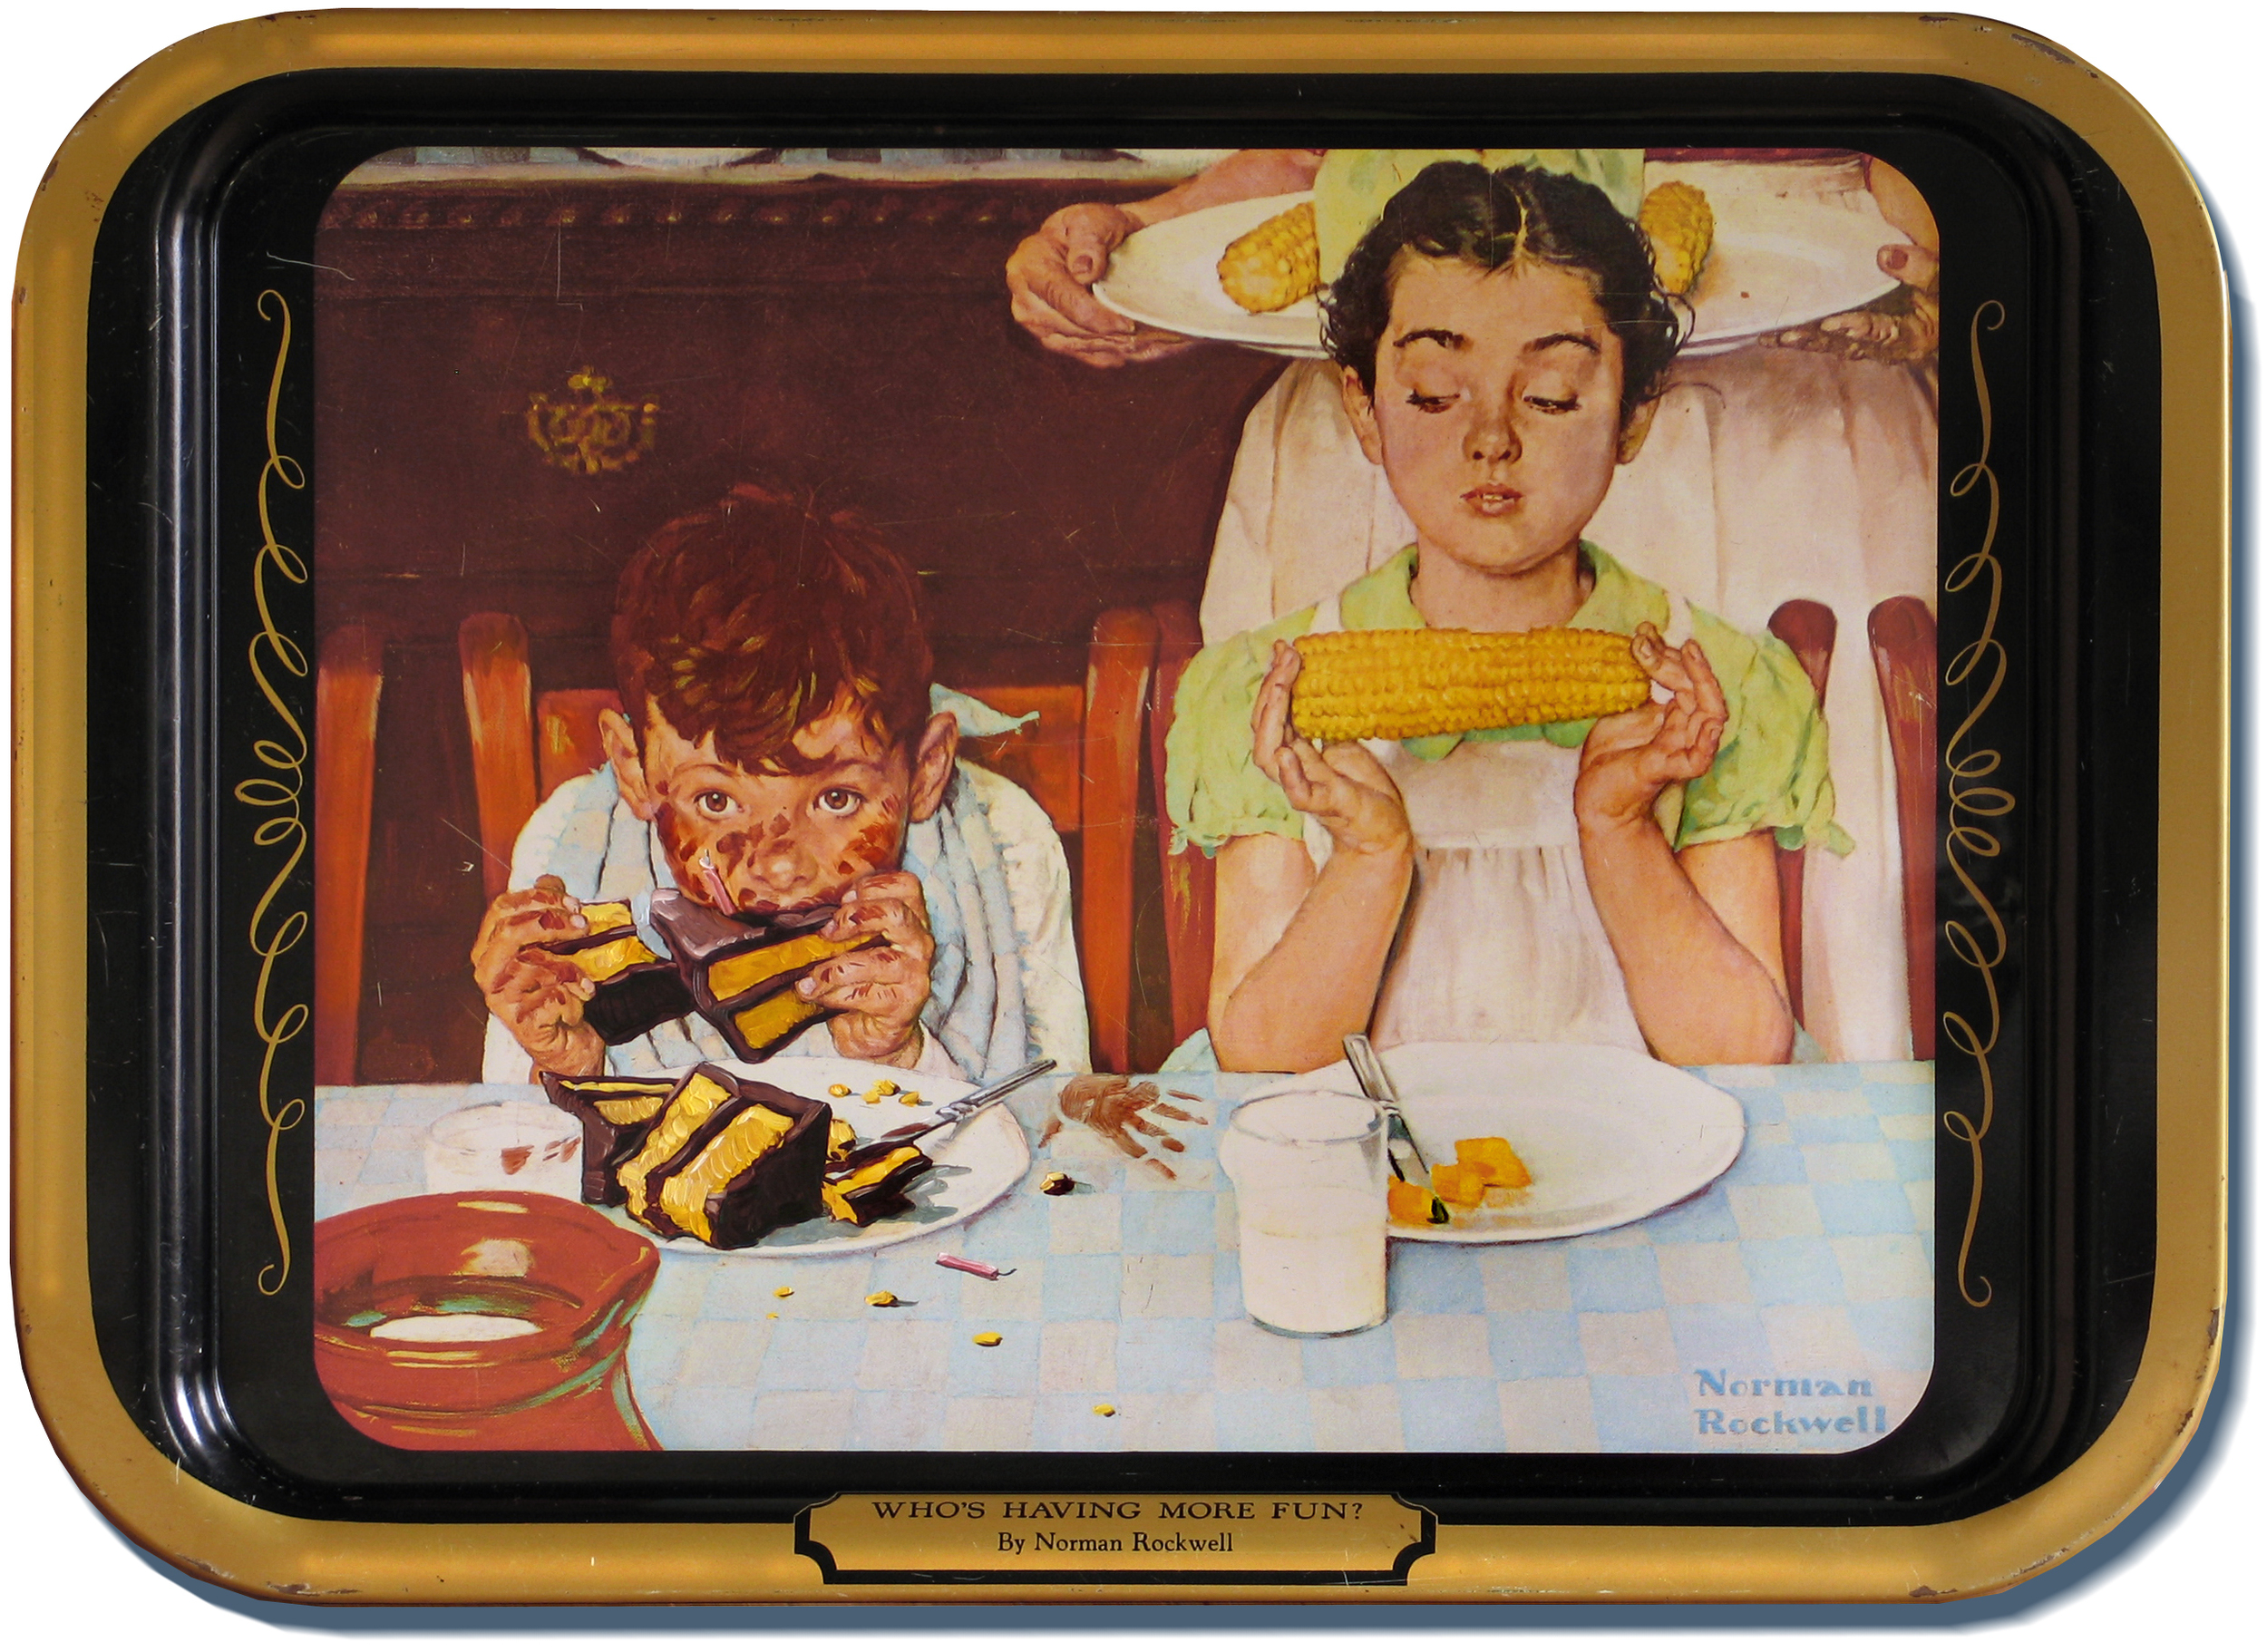 Cake Glutton   • Oil on a serving tray (from a Norman Rockwell illustration)